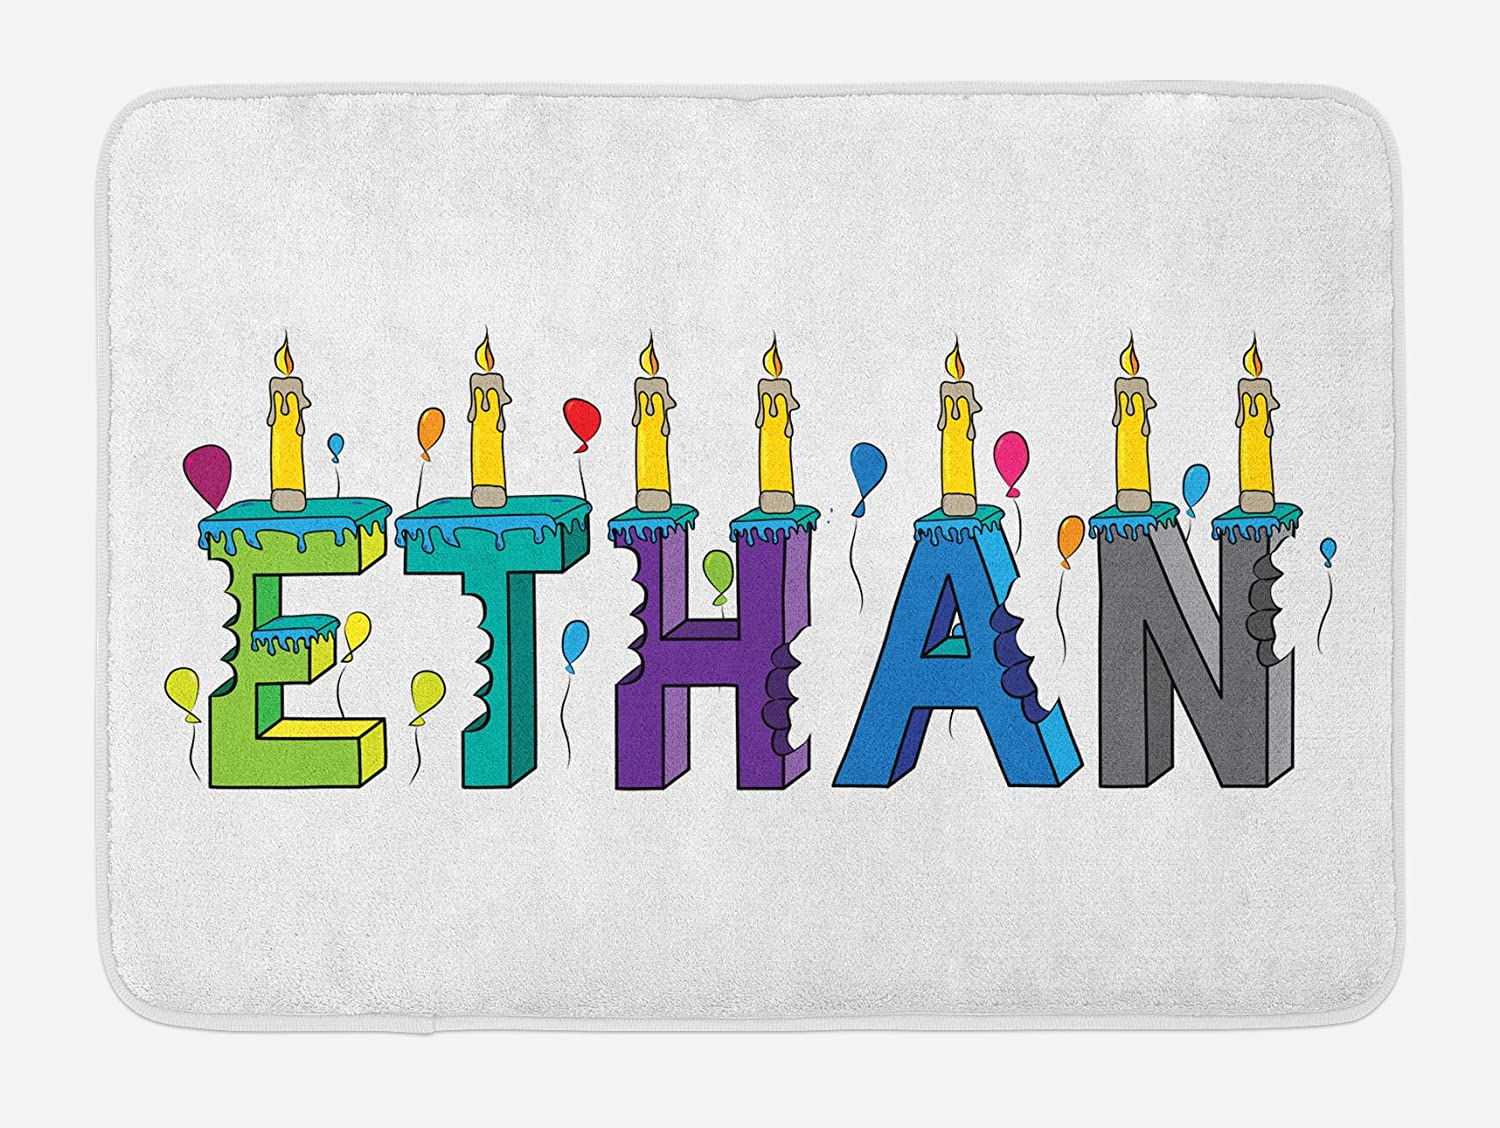 Ambesonne Ethan Bath Mat, Celebration Themed Candles and Bitten Cake Popular Male Name Birthday Party Image, Plush Bathroom Decor Mat with Non Slip Backing, 29.5